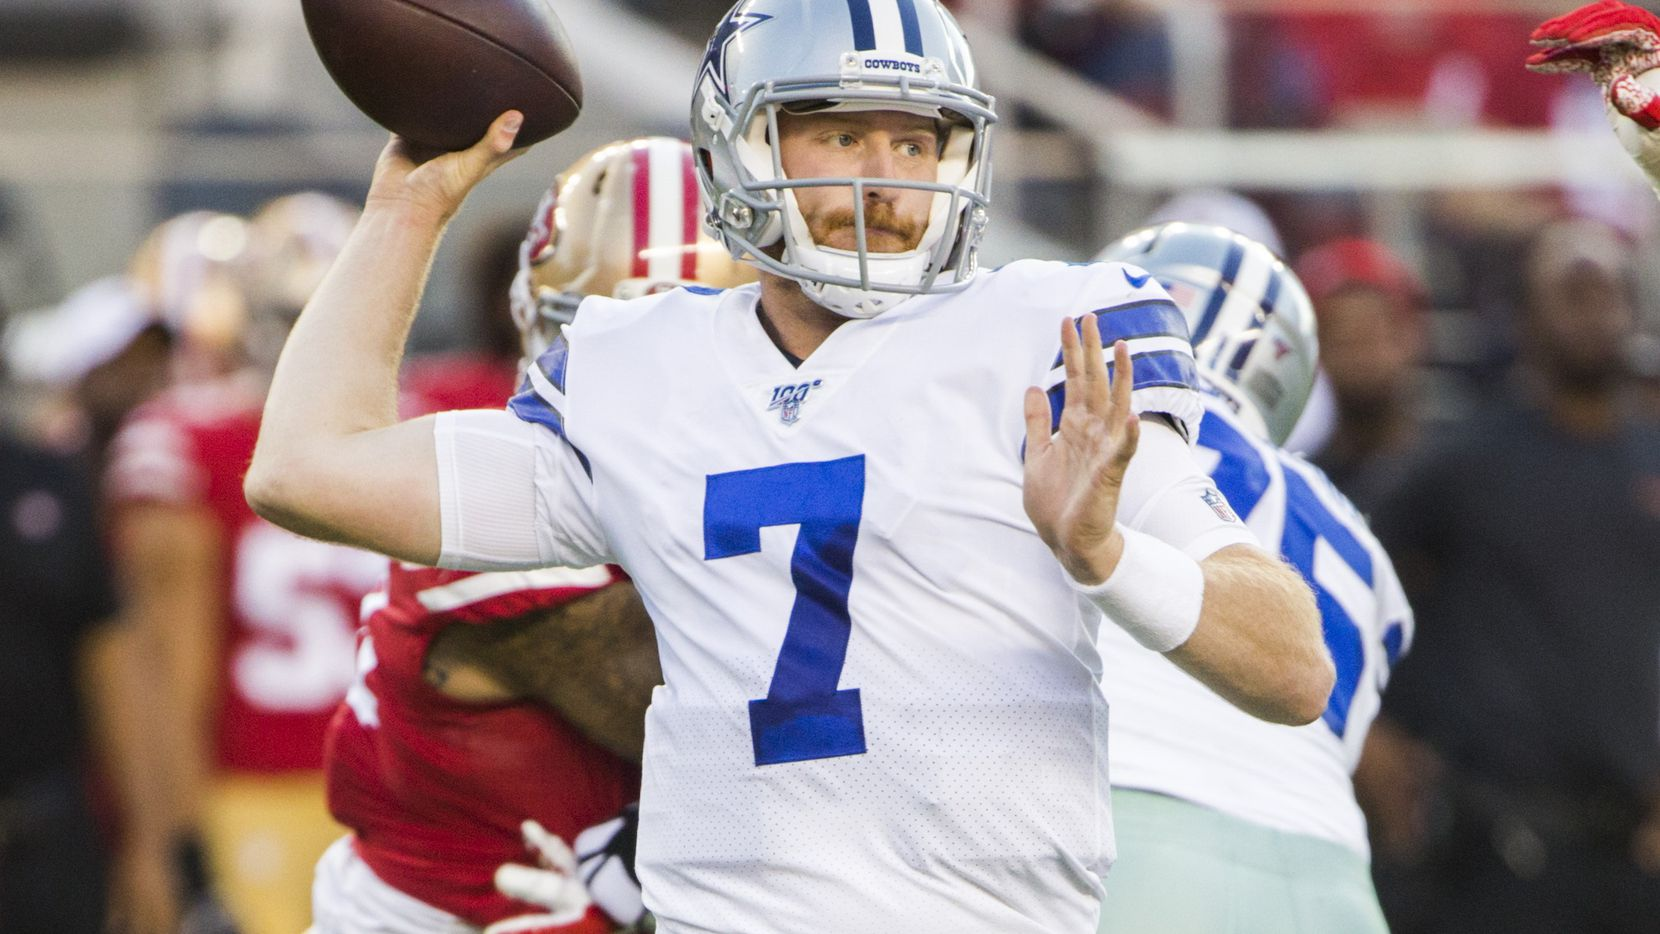 Dallas Cowboys quarterback Cooper Rush (7) throws a pass during the second quarter of an NFL preseason game between the Dallas Cowboys and the San Francisco 49ers on Saturday, August 10, 2019 at Levi's Stadium in Santa Clara, California. (Ashley Landis/The Dallas Morning News)